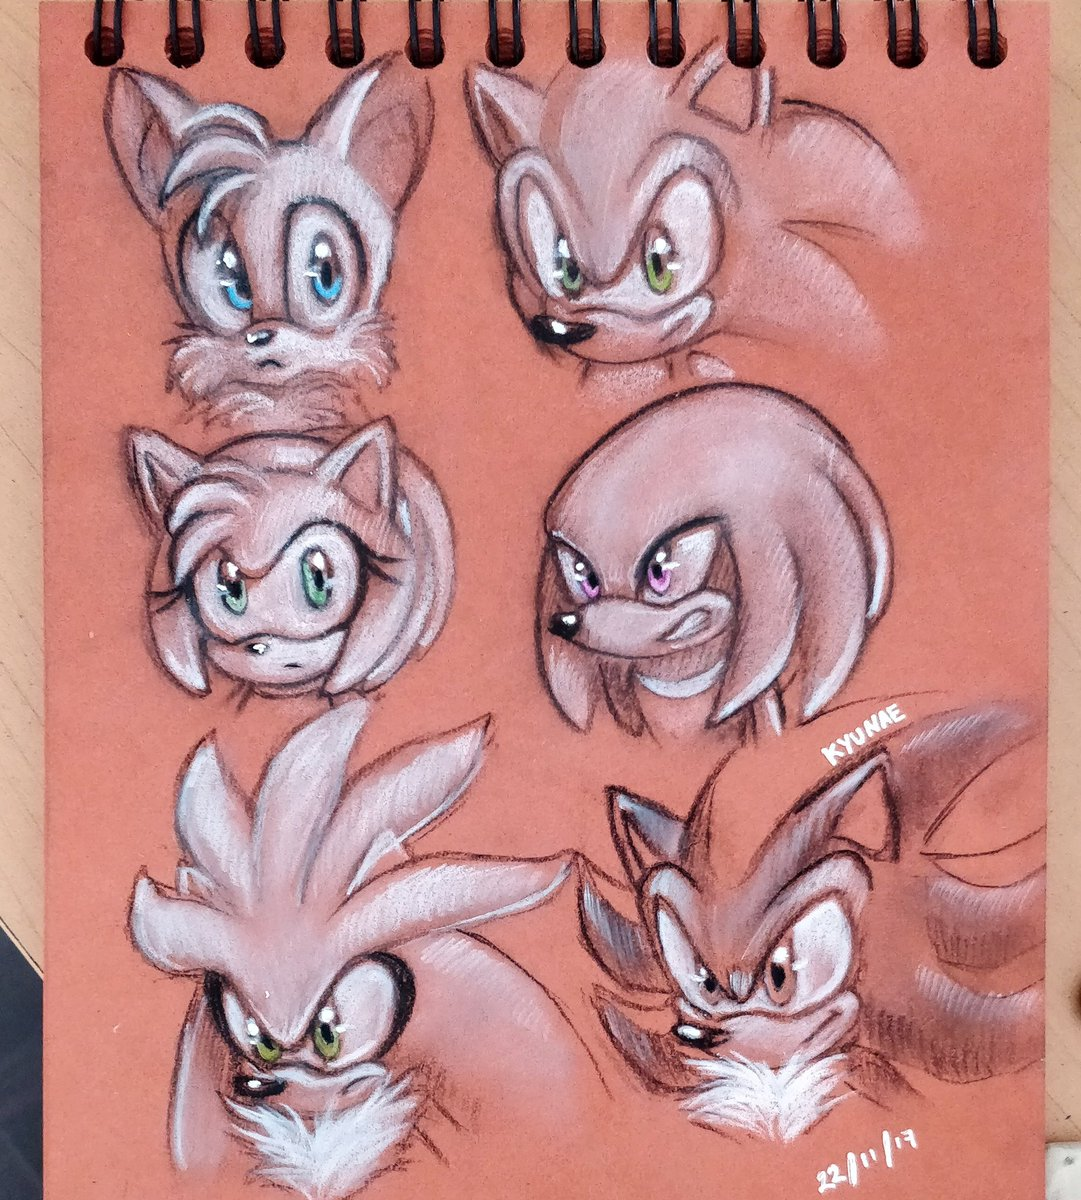 Sonic, Tails, Amy, Knuckles, Silver &amp; Shadow charcoal doodles.  #charcoal #doodle #sketch #sketchbook #hedgehog #echidna #fanart #sonicfanart #characterart #blackandwhite #pencil #paper #traditionalart #traditional #sega #art #sketchbook #game #gaming #gameart #gamingart<br>http://pic.twitter.com/6ZSstbNClT